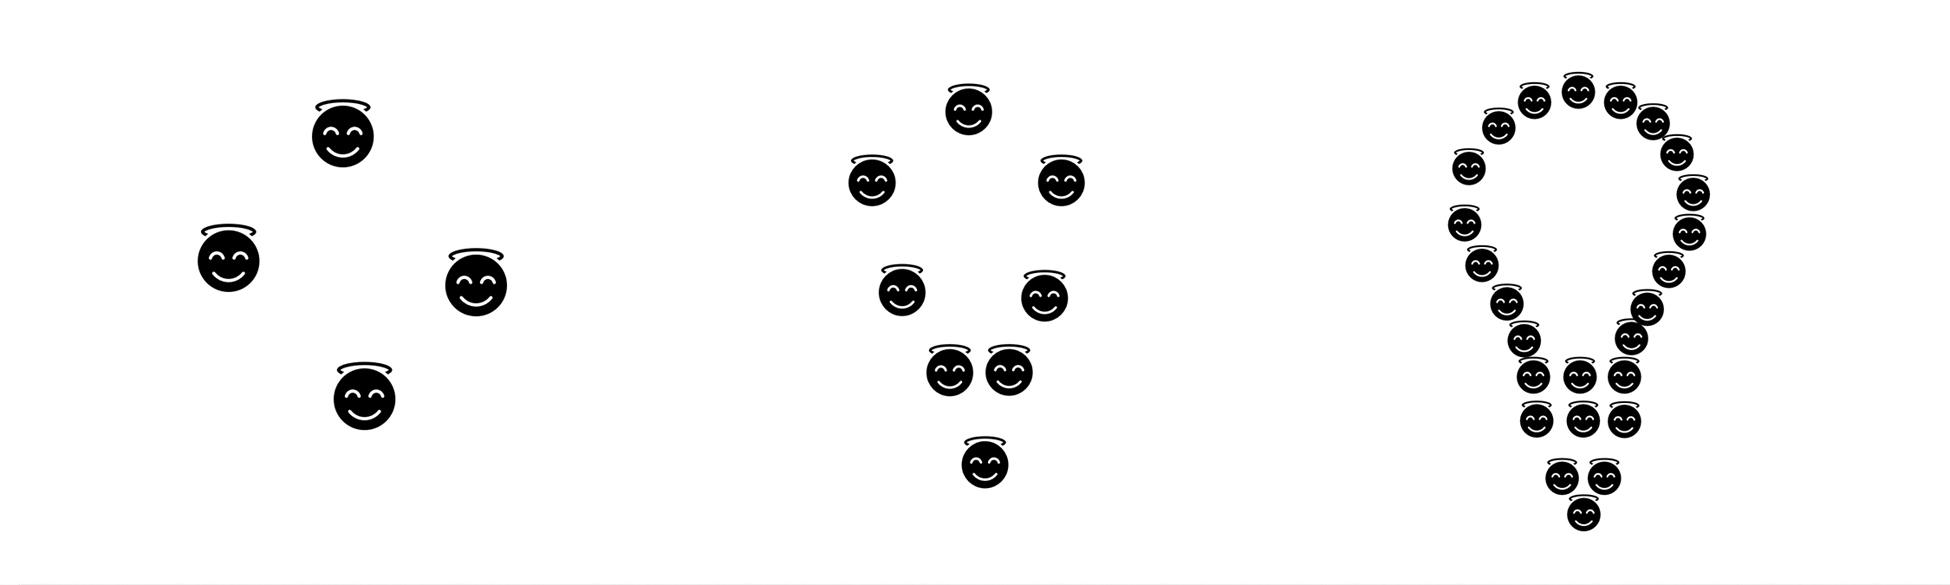 Image showing three groups of faces that form a light bulb